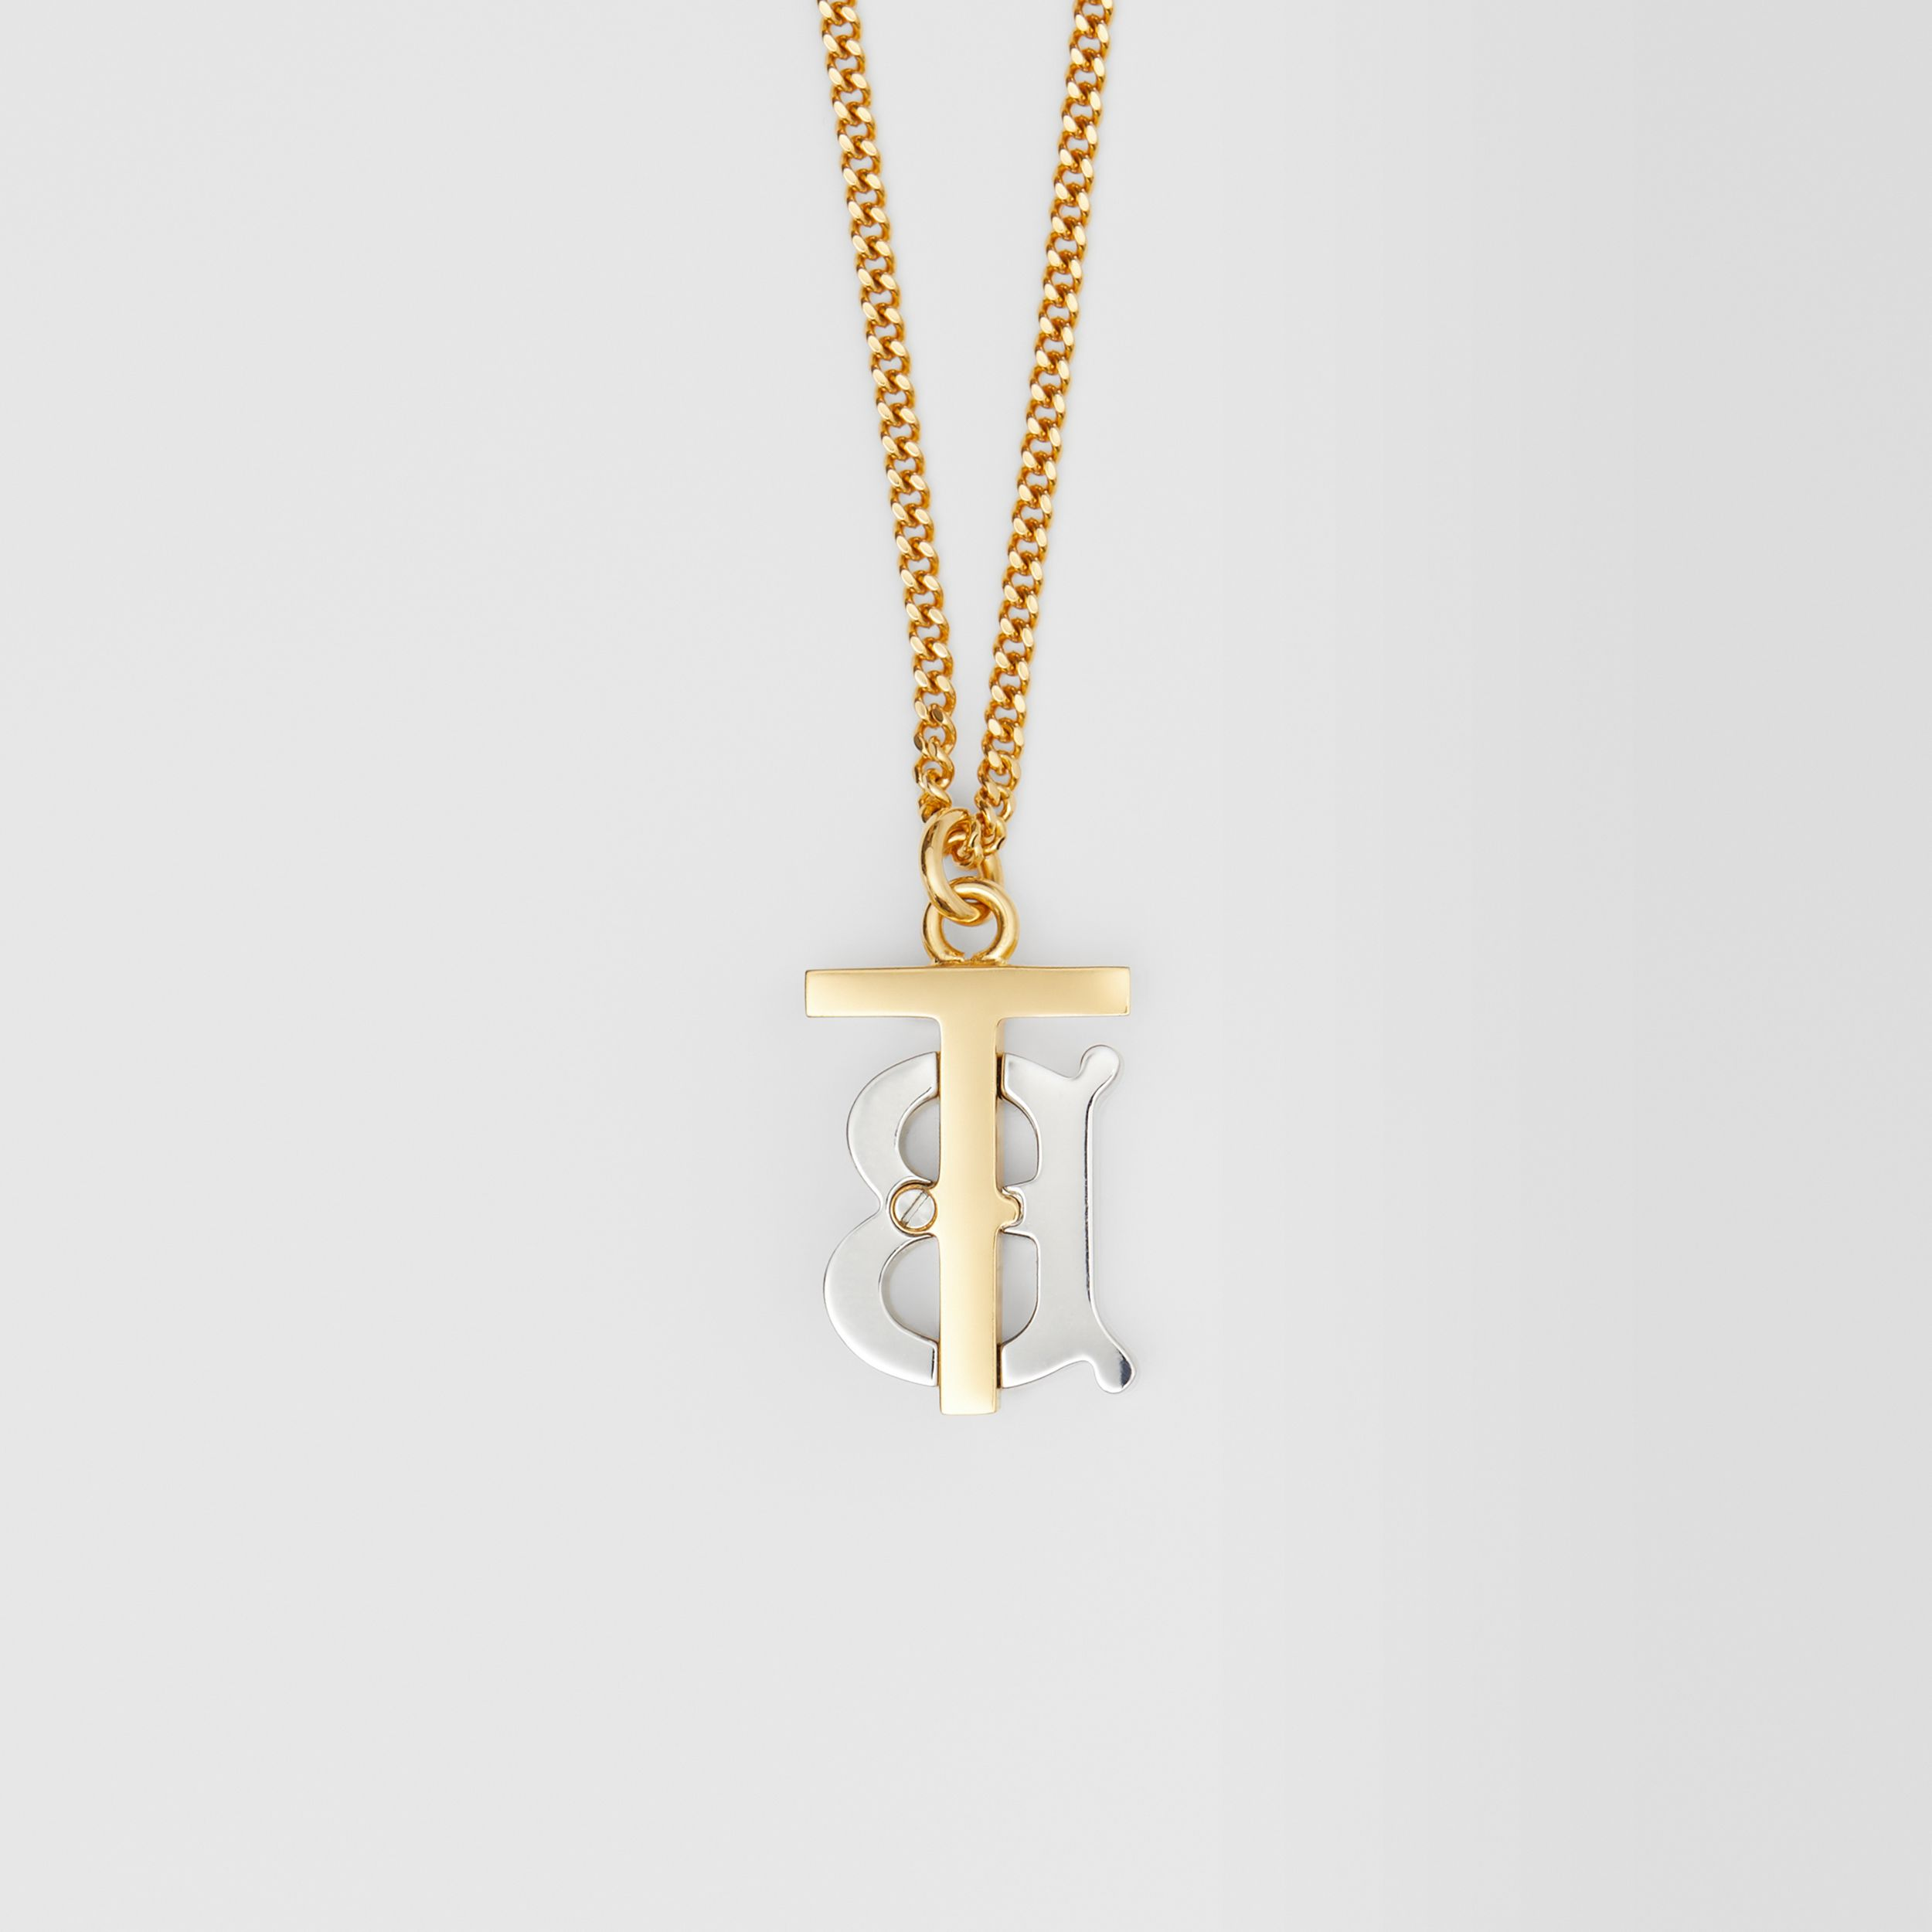 Collier plaqué or et palladium Monogram (Clair/palladium) - Femme | Burberry - 4